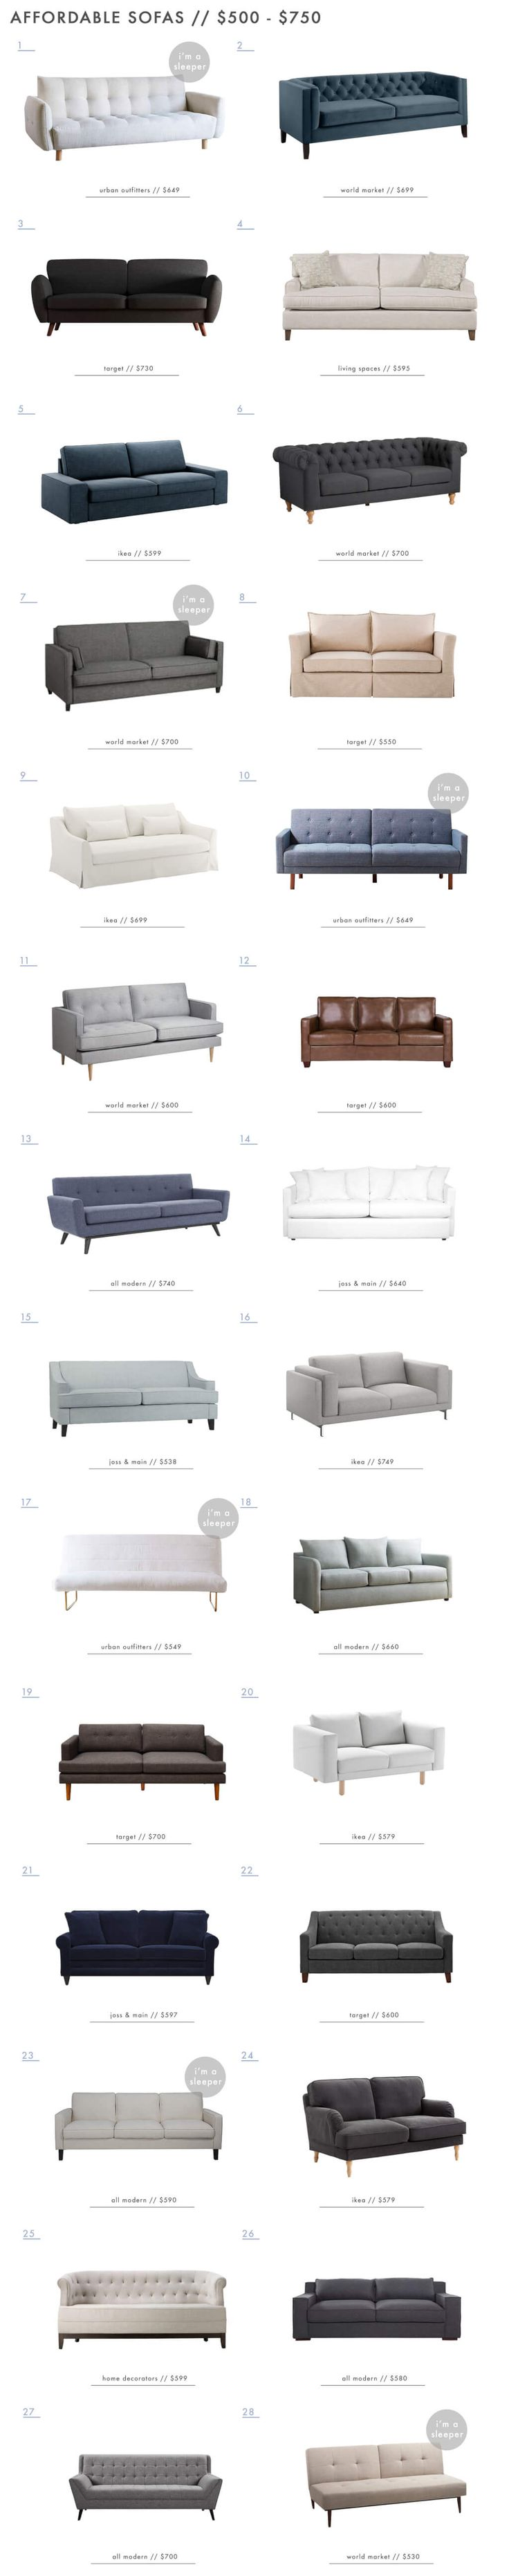 Best 25 Affordable sofas ideas on Pinterest